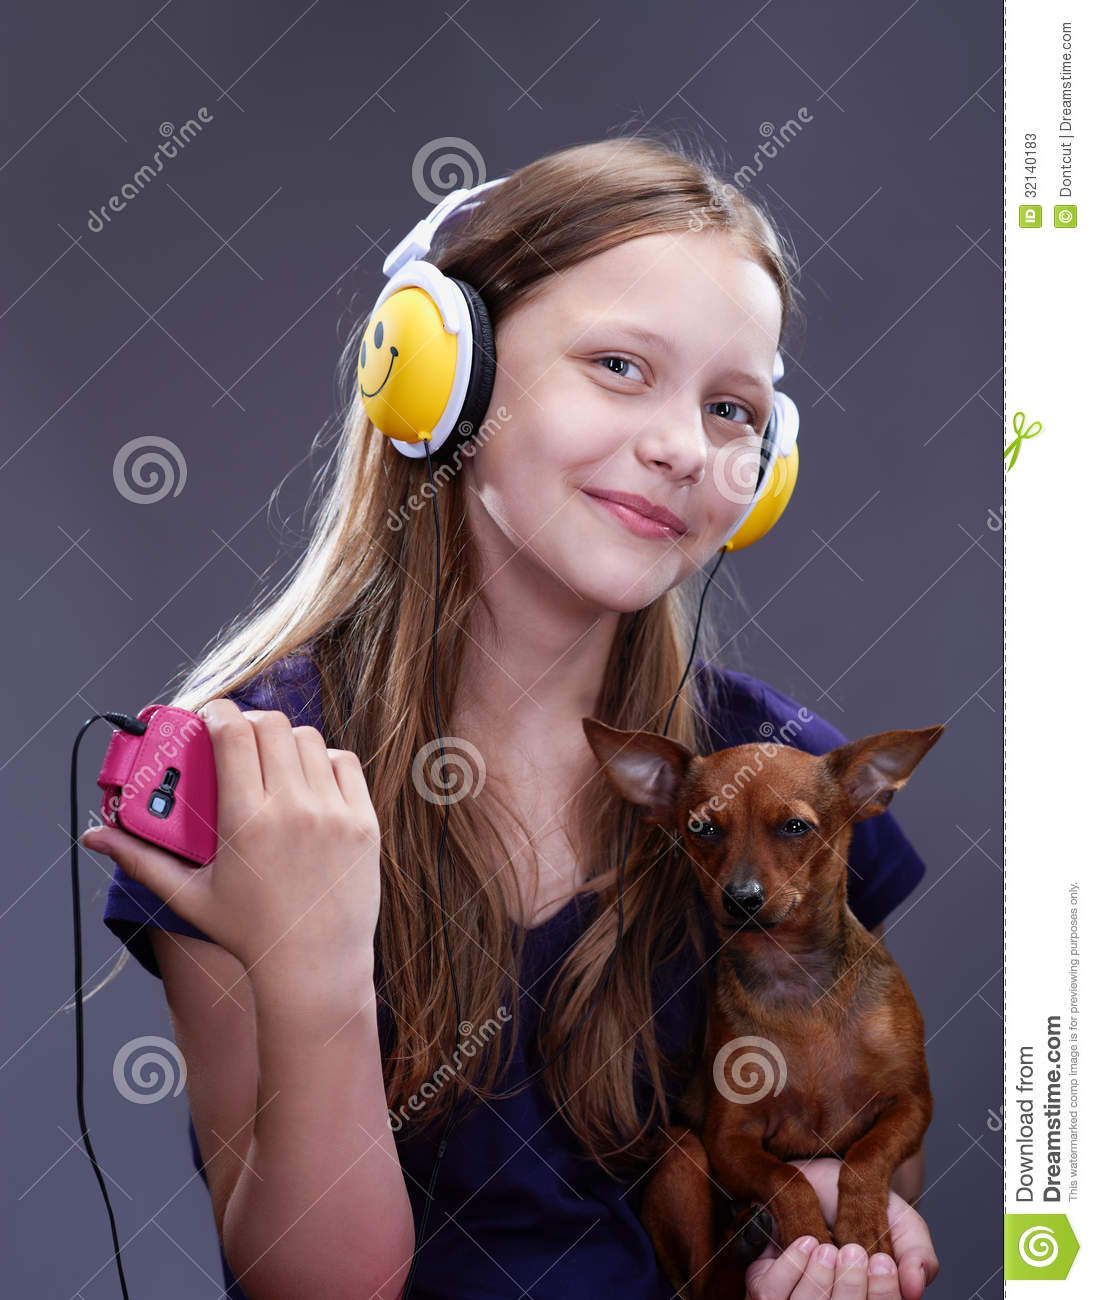 Studio shot of a smiling teen girl with headphones and Tiny girl teen